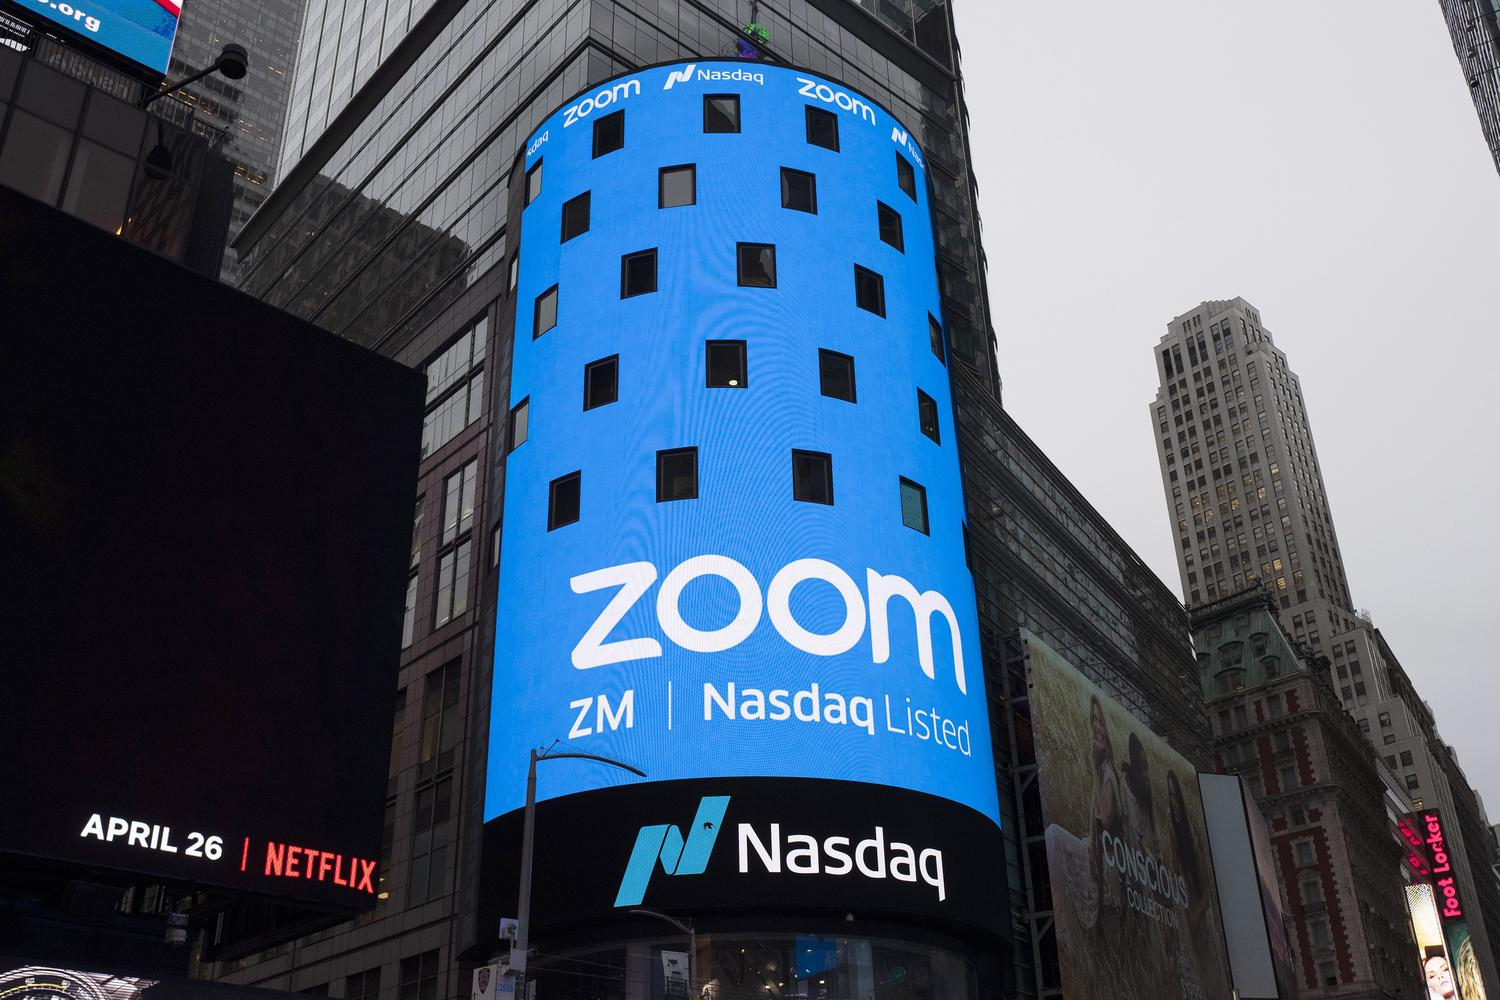 zoomnsd